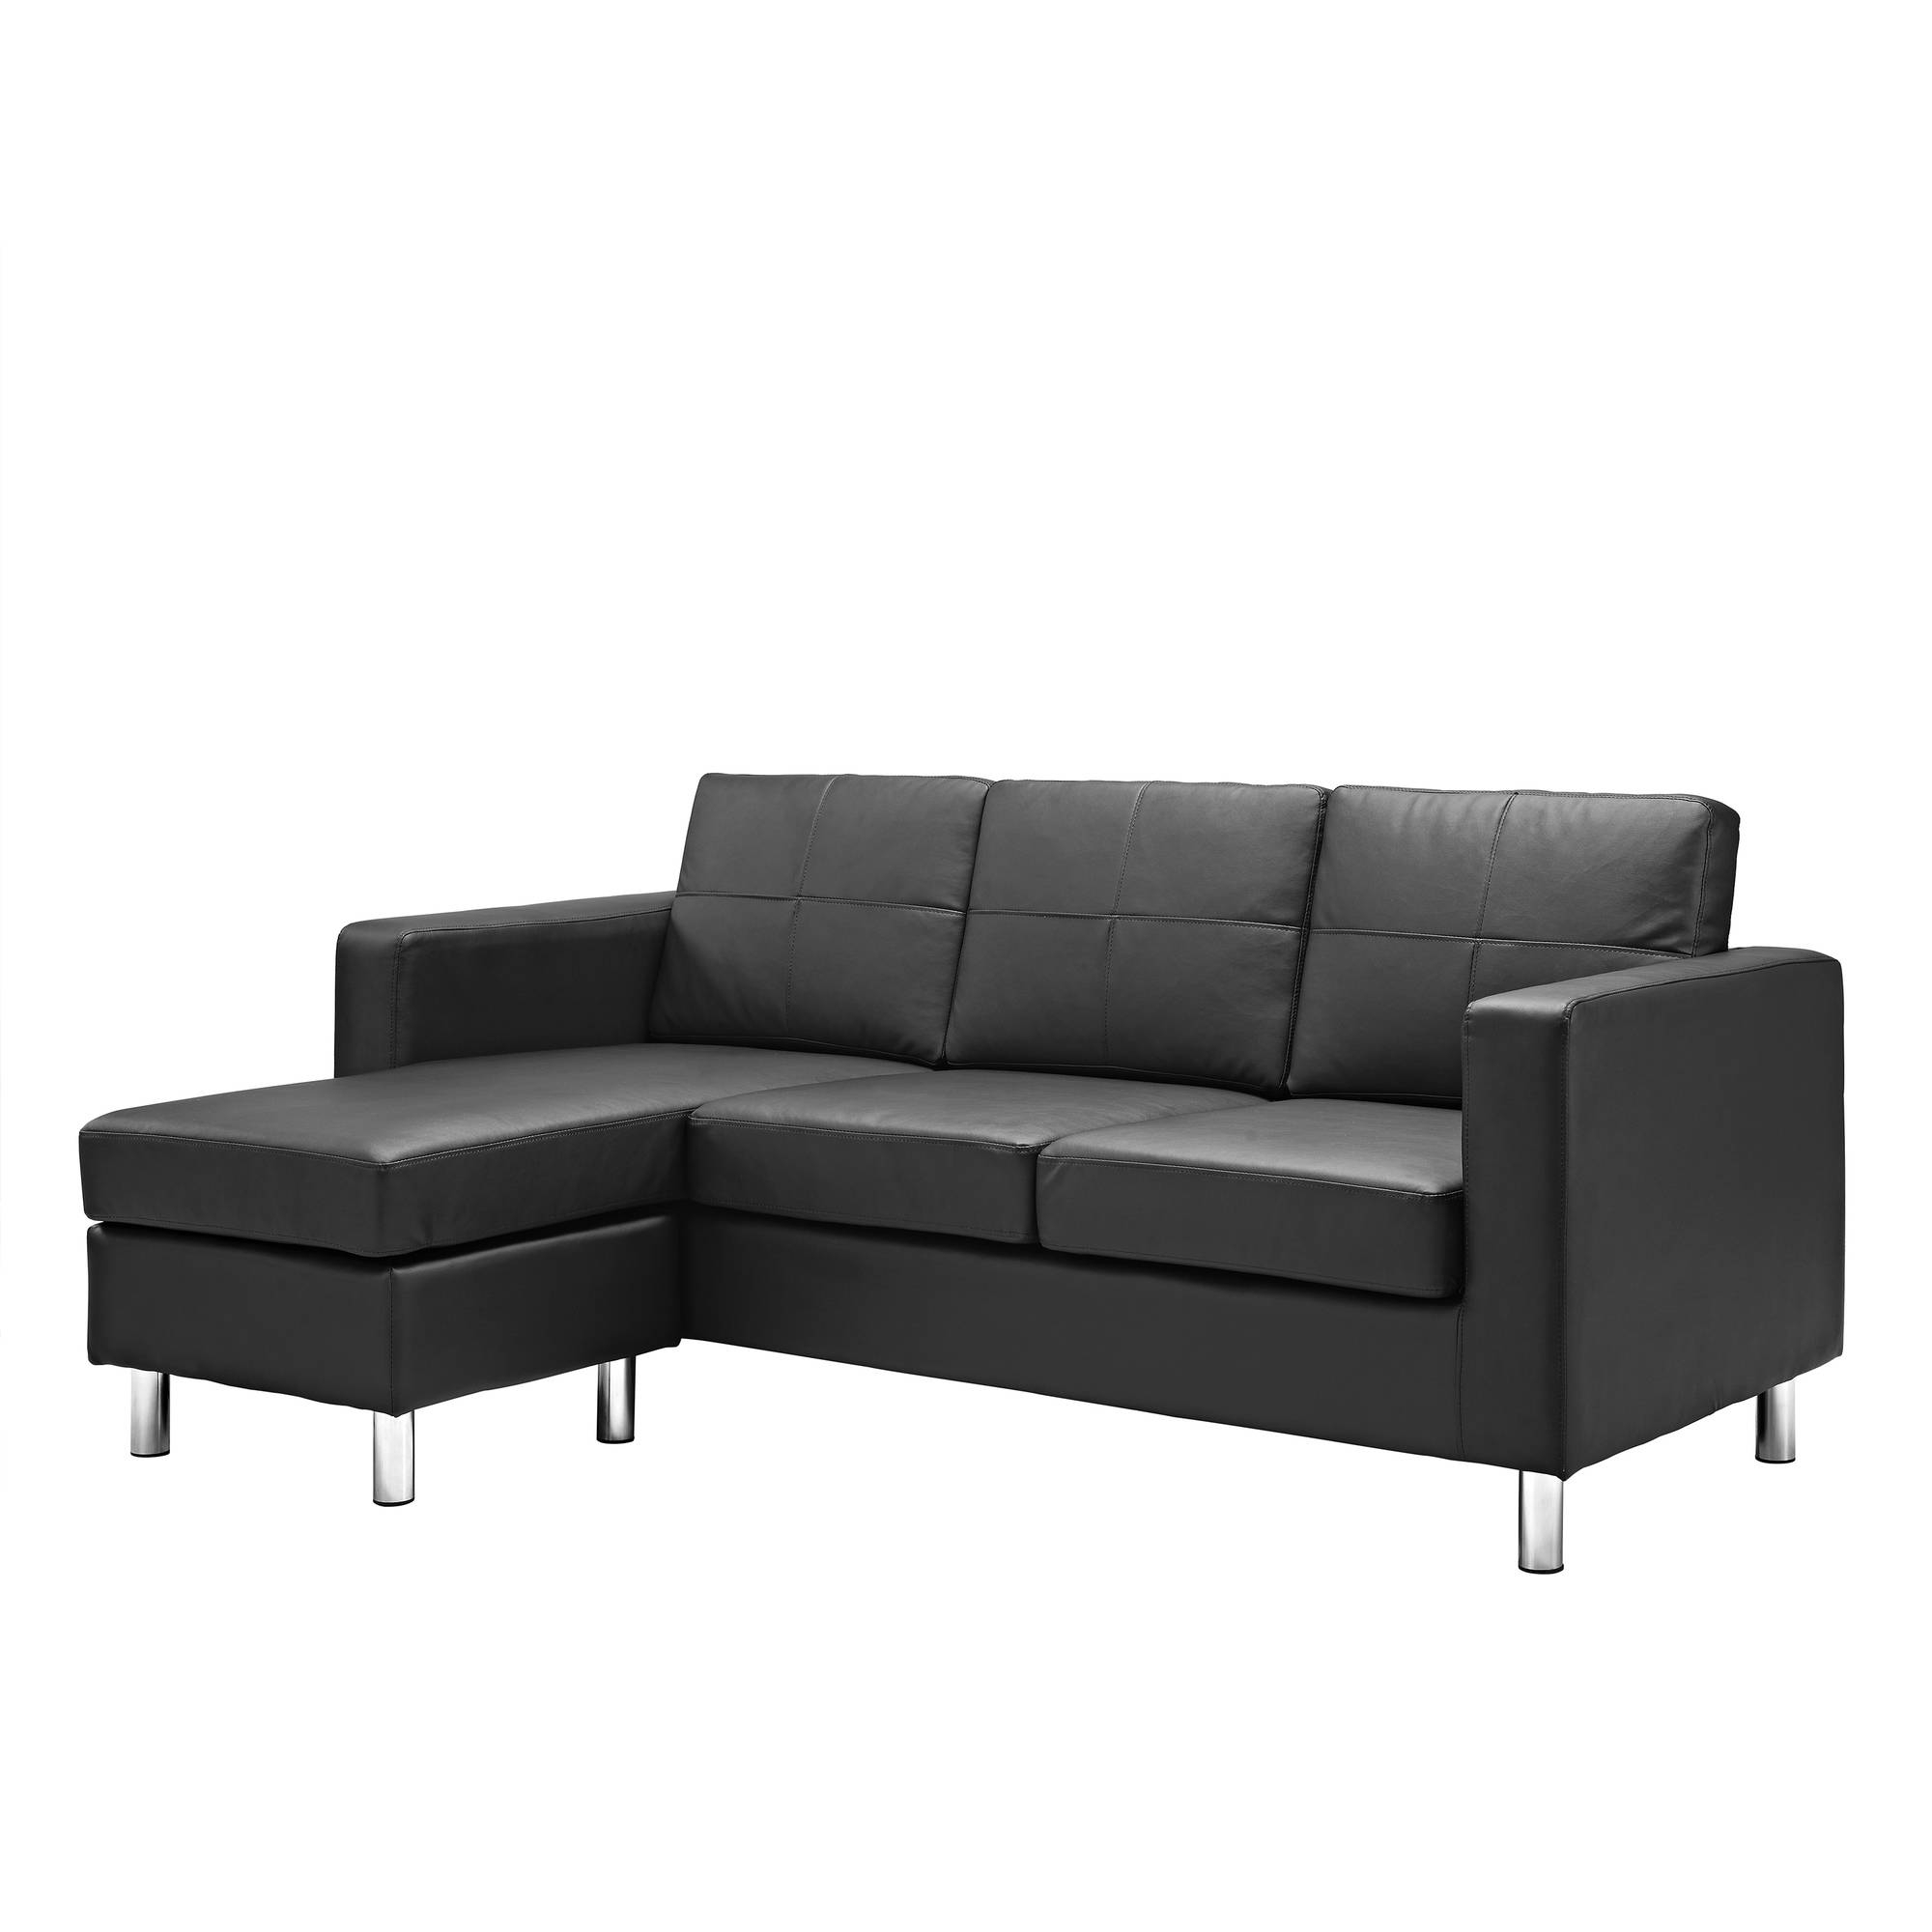 Dorel Living Small Spaces Configurable Sectional Sofa, Multiple For 2018 Sectional Sofas At Walmart (View 2 of 15)